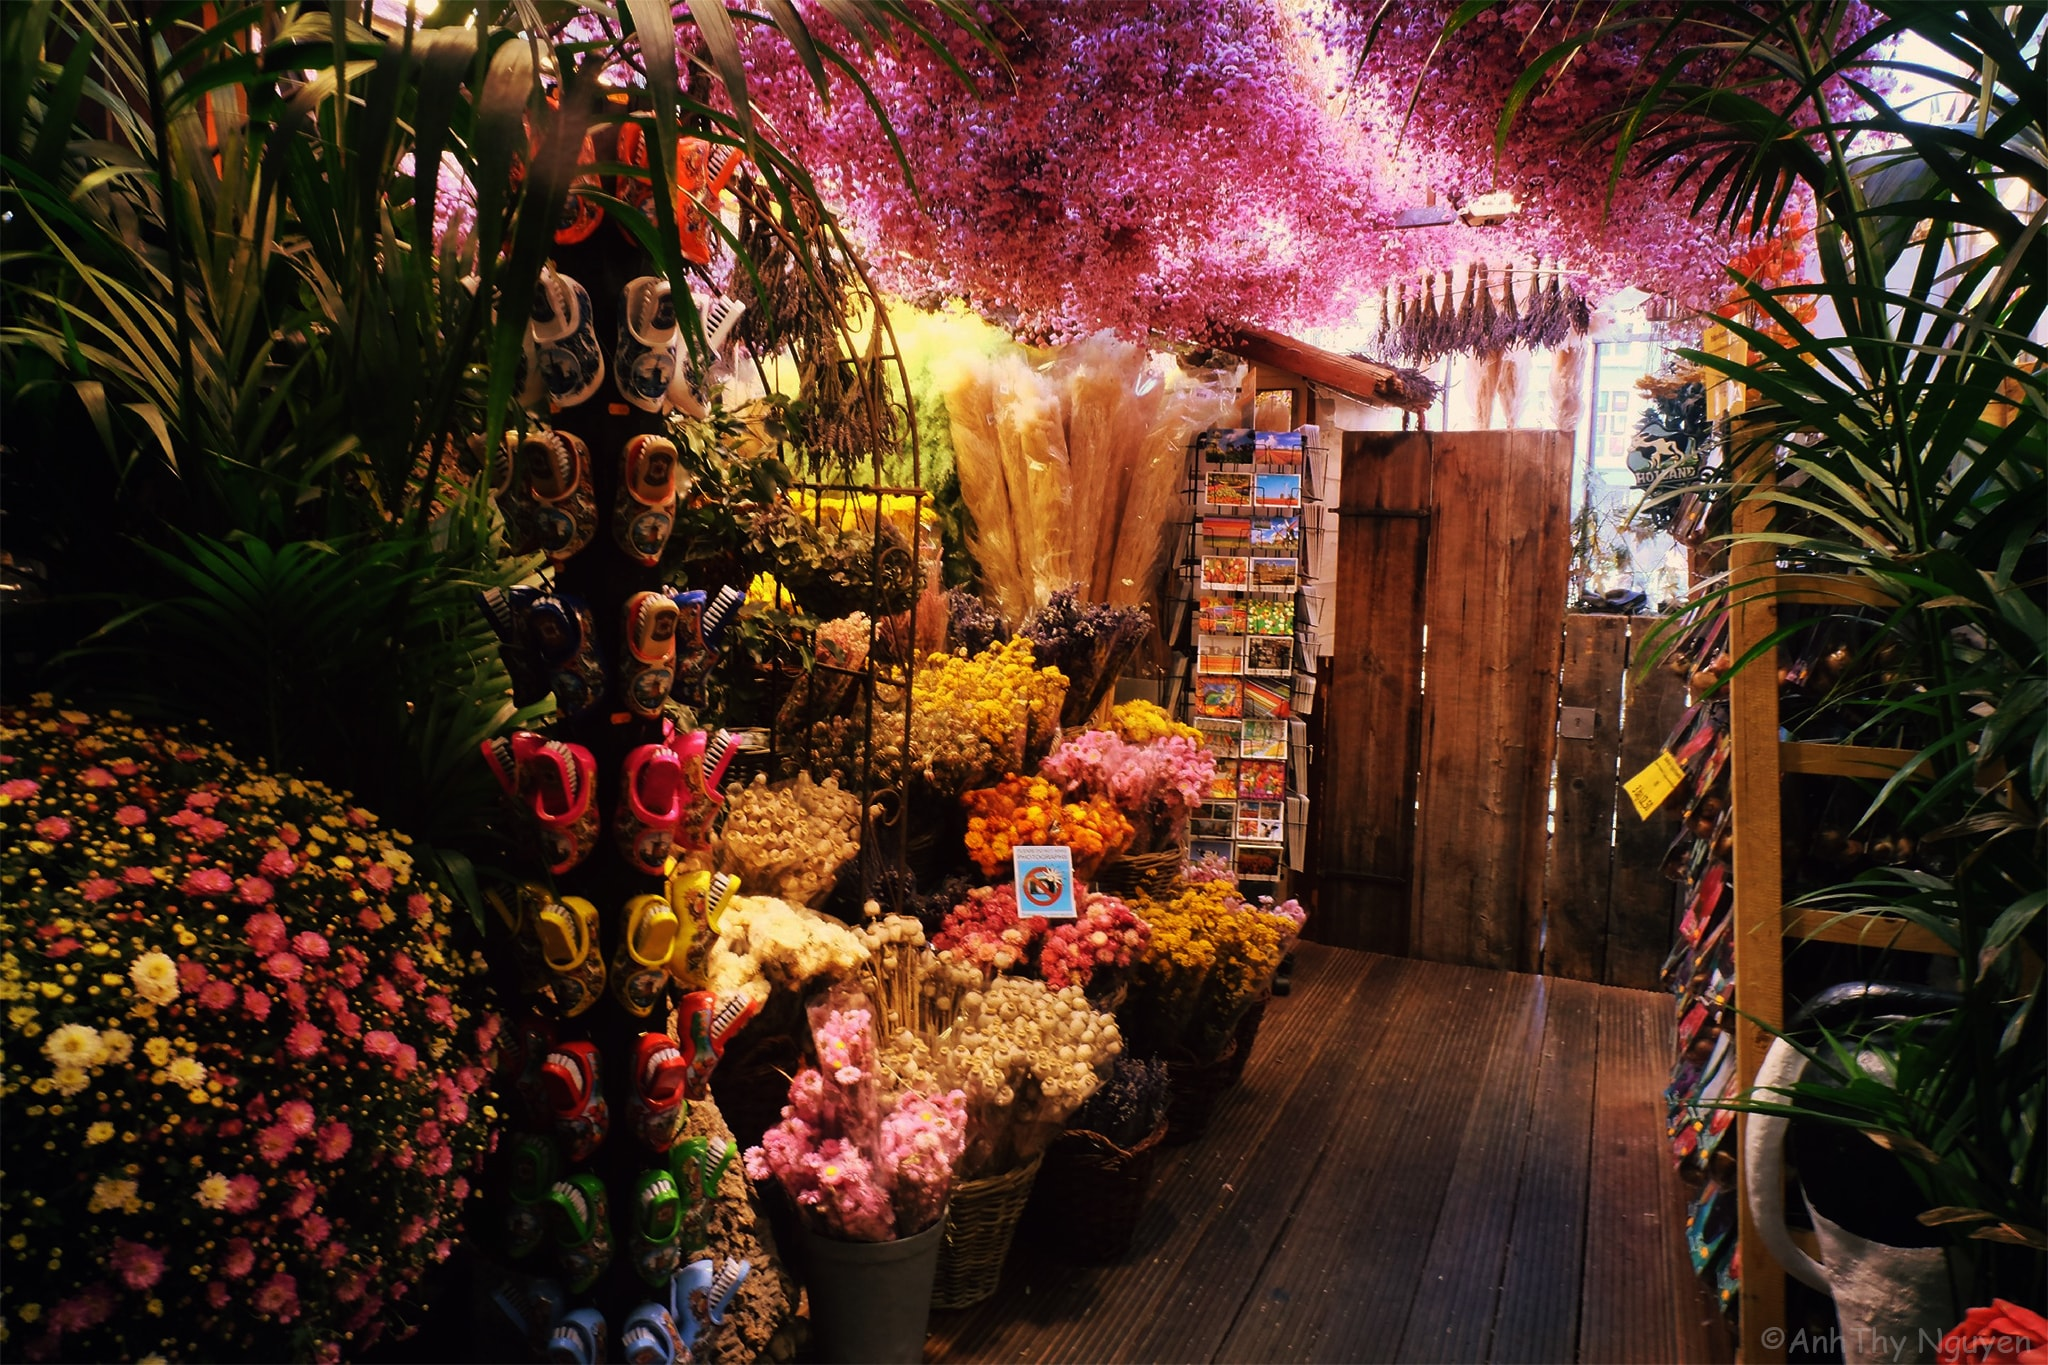 A closer look into the Flower market in Amsterdam